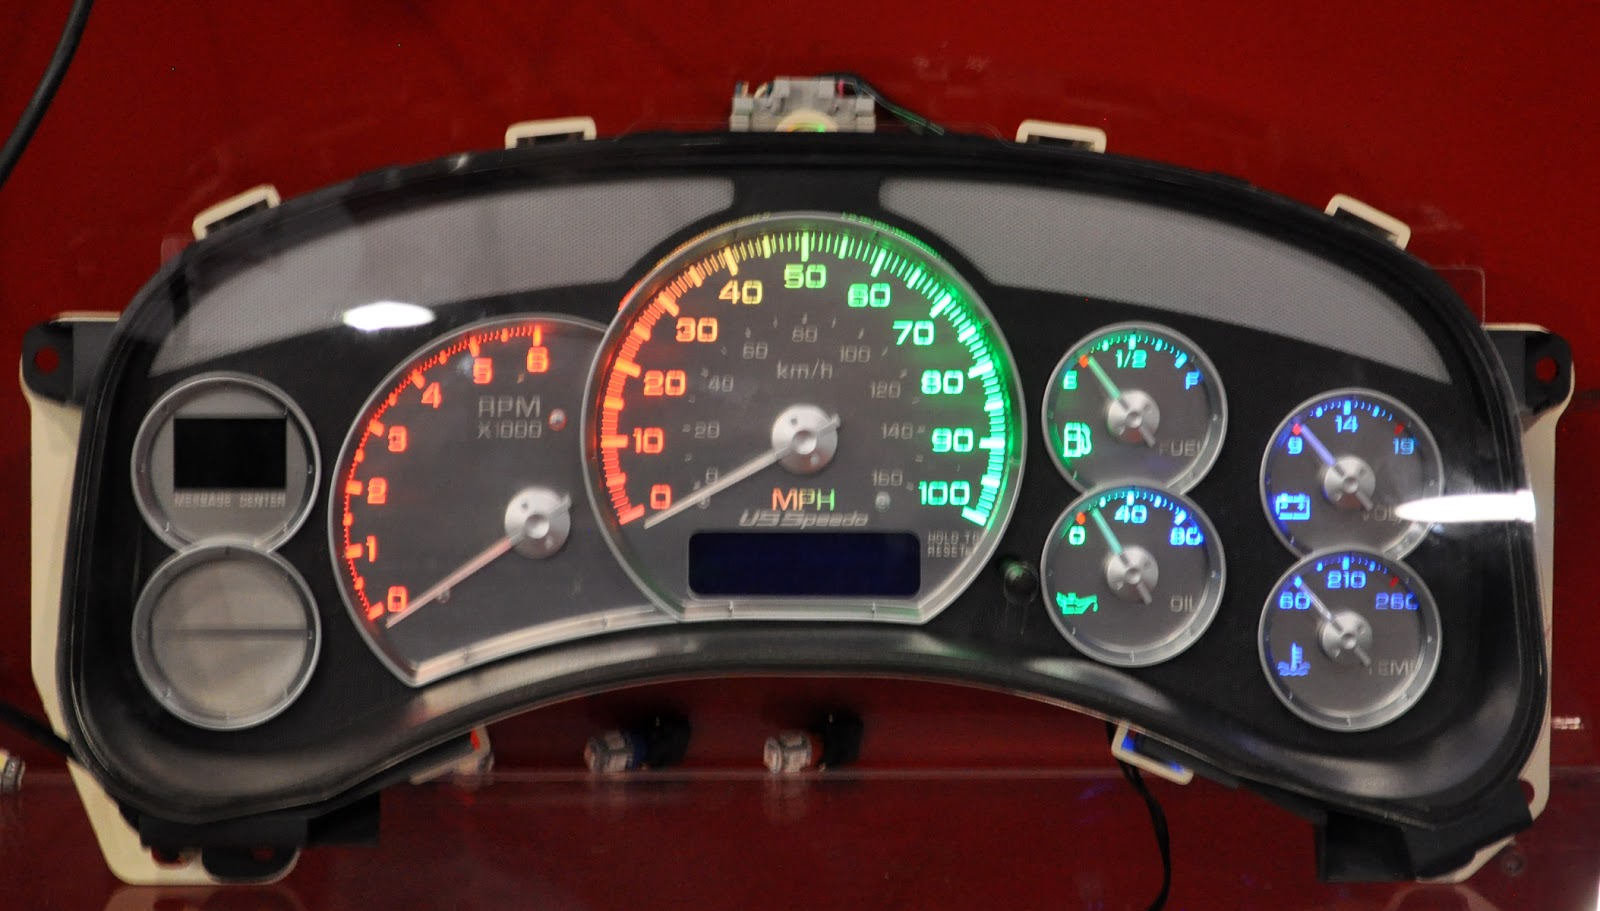 Just A Car Guy: US Speedo has a great looking new item, the full